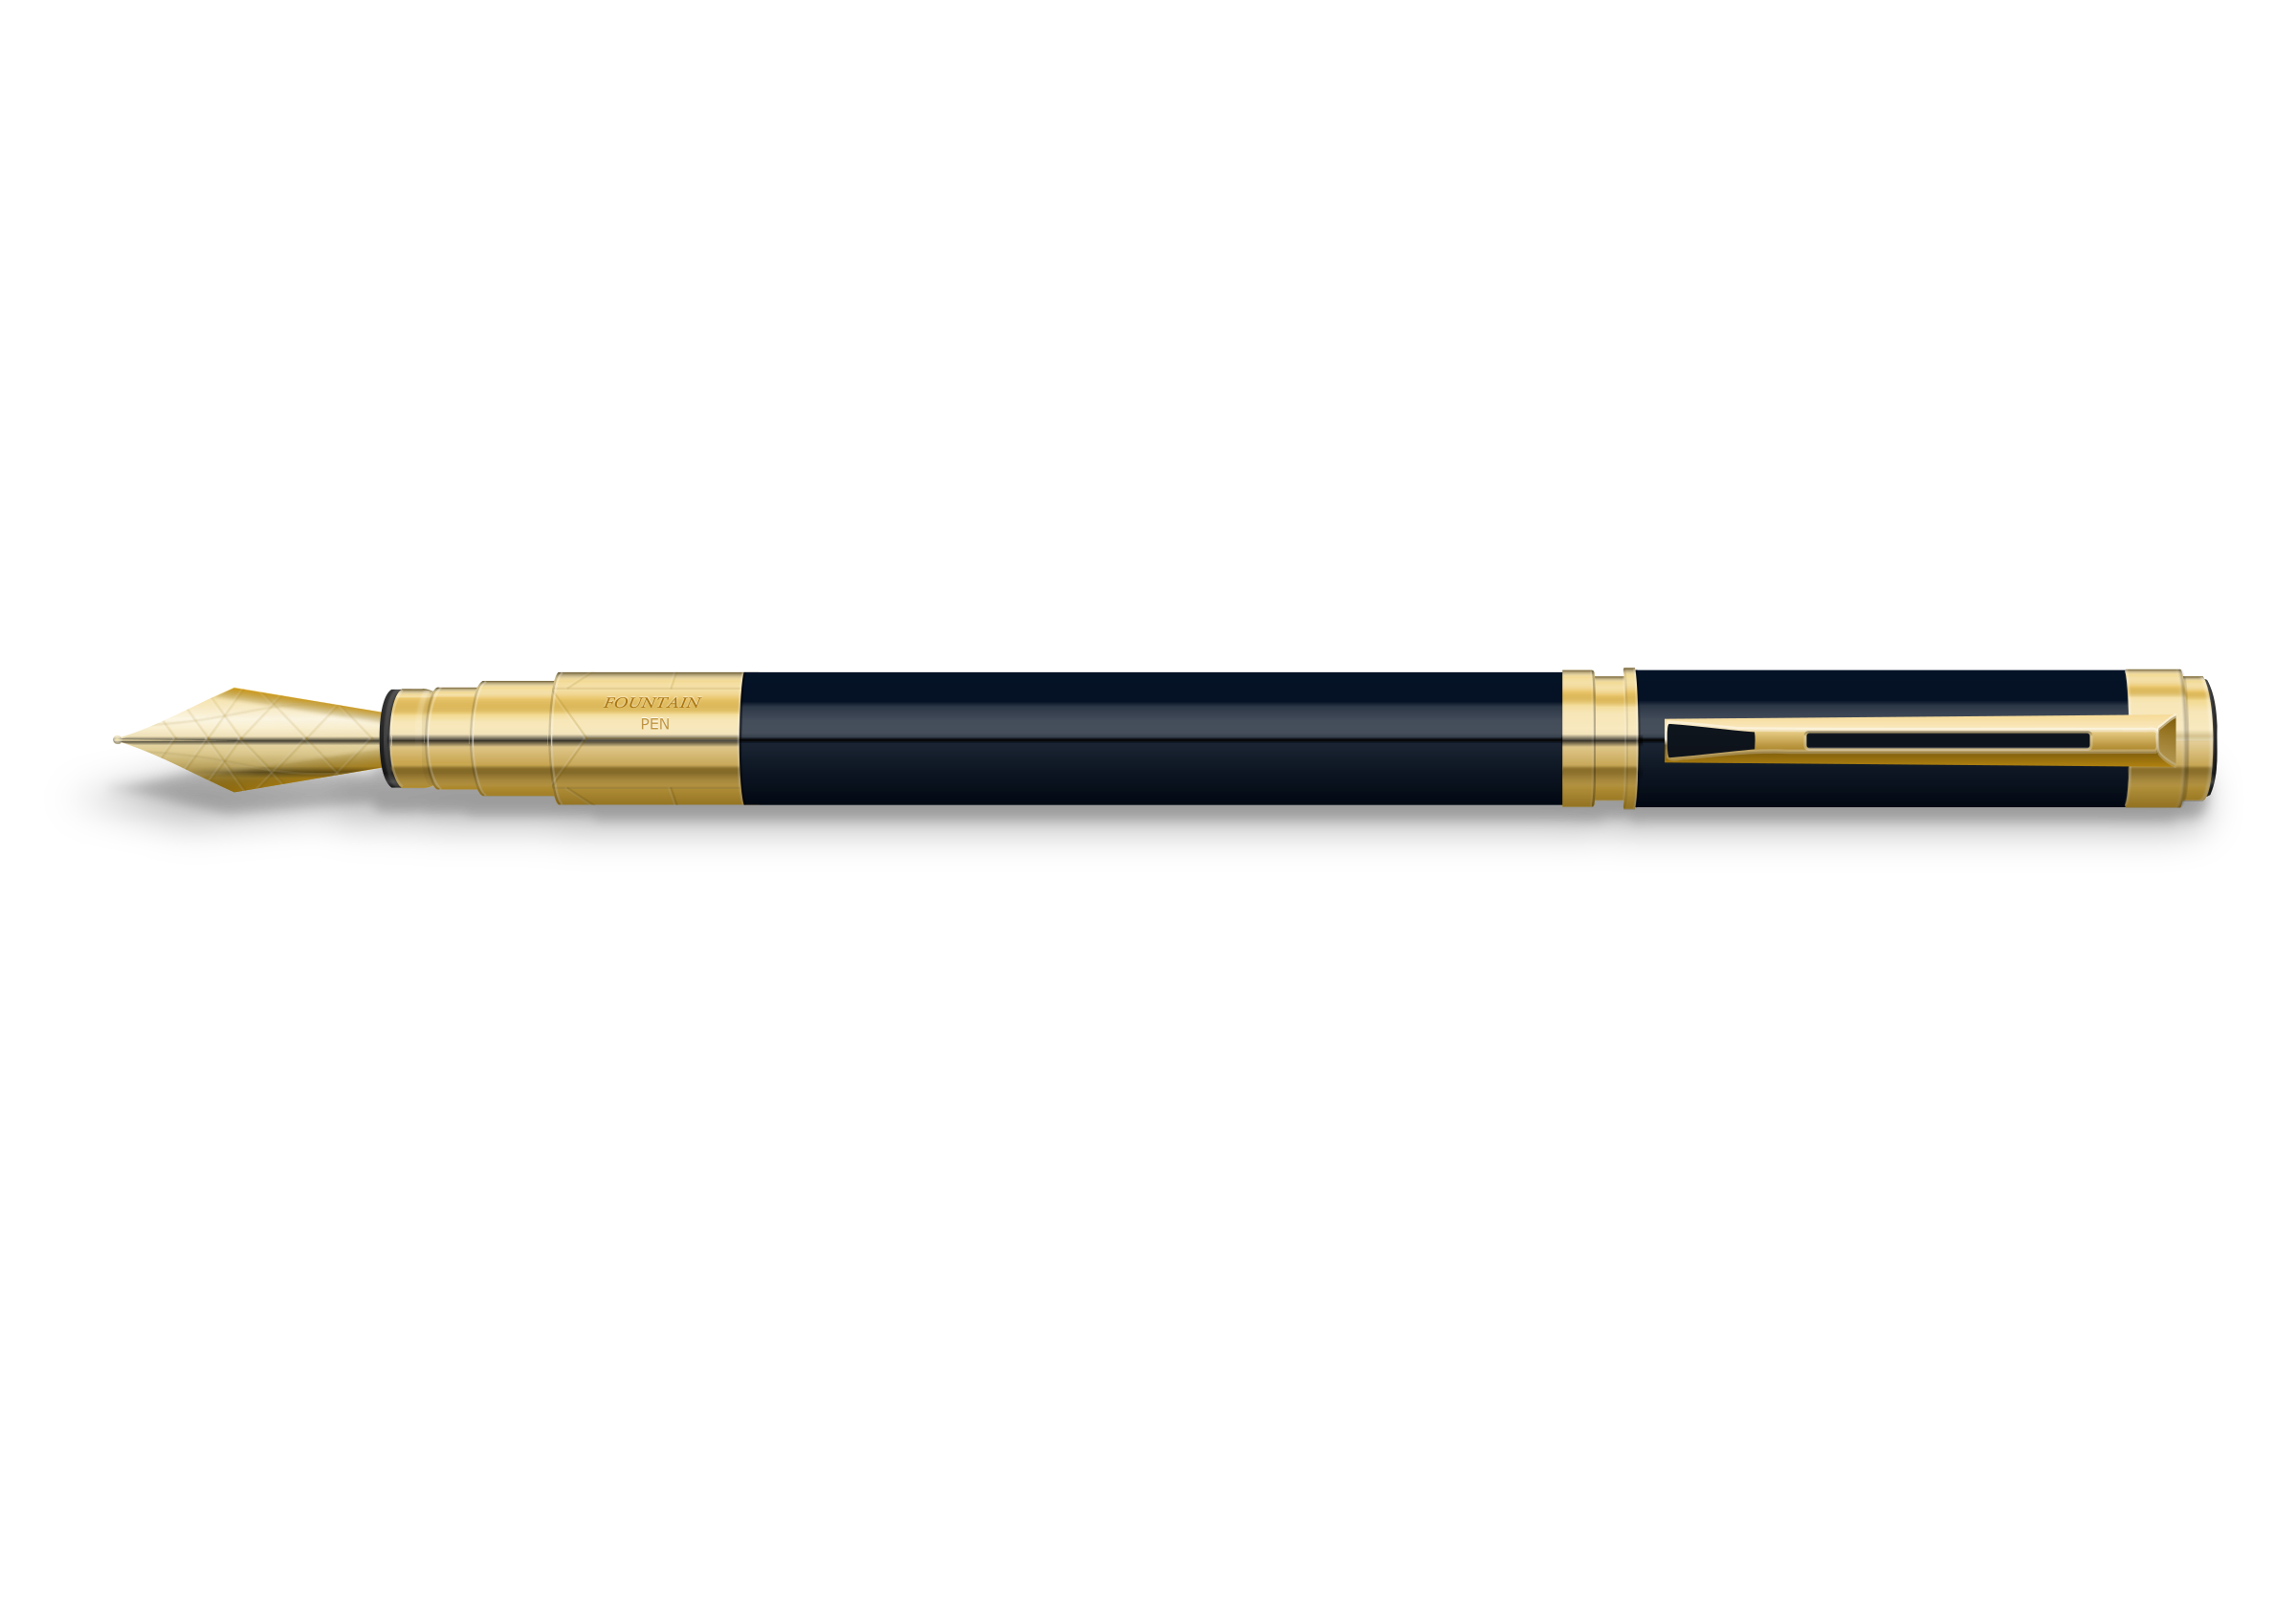 Big image png. Poetry clipart fountain pen